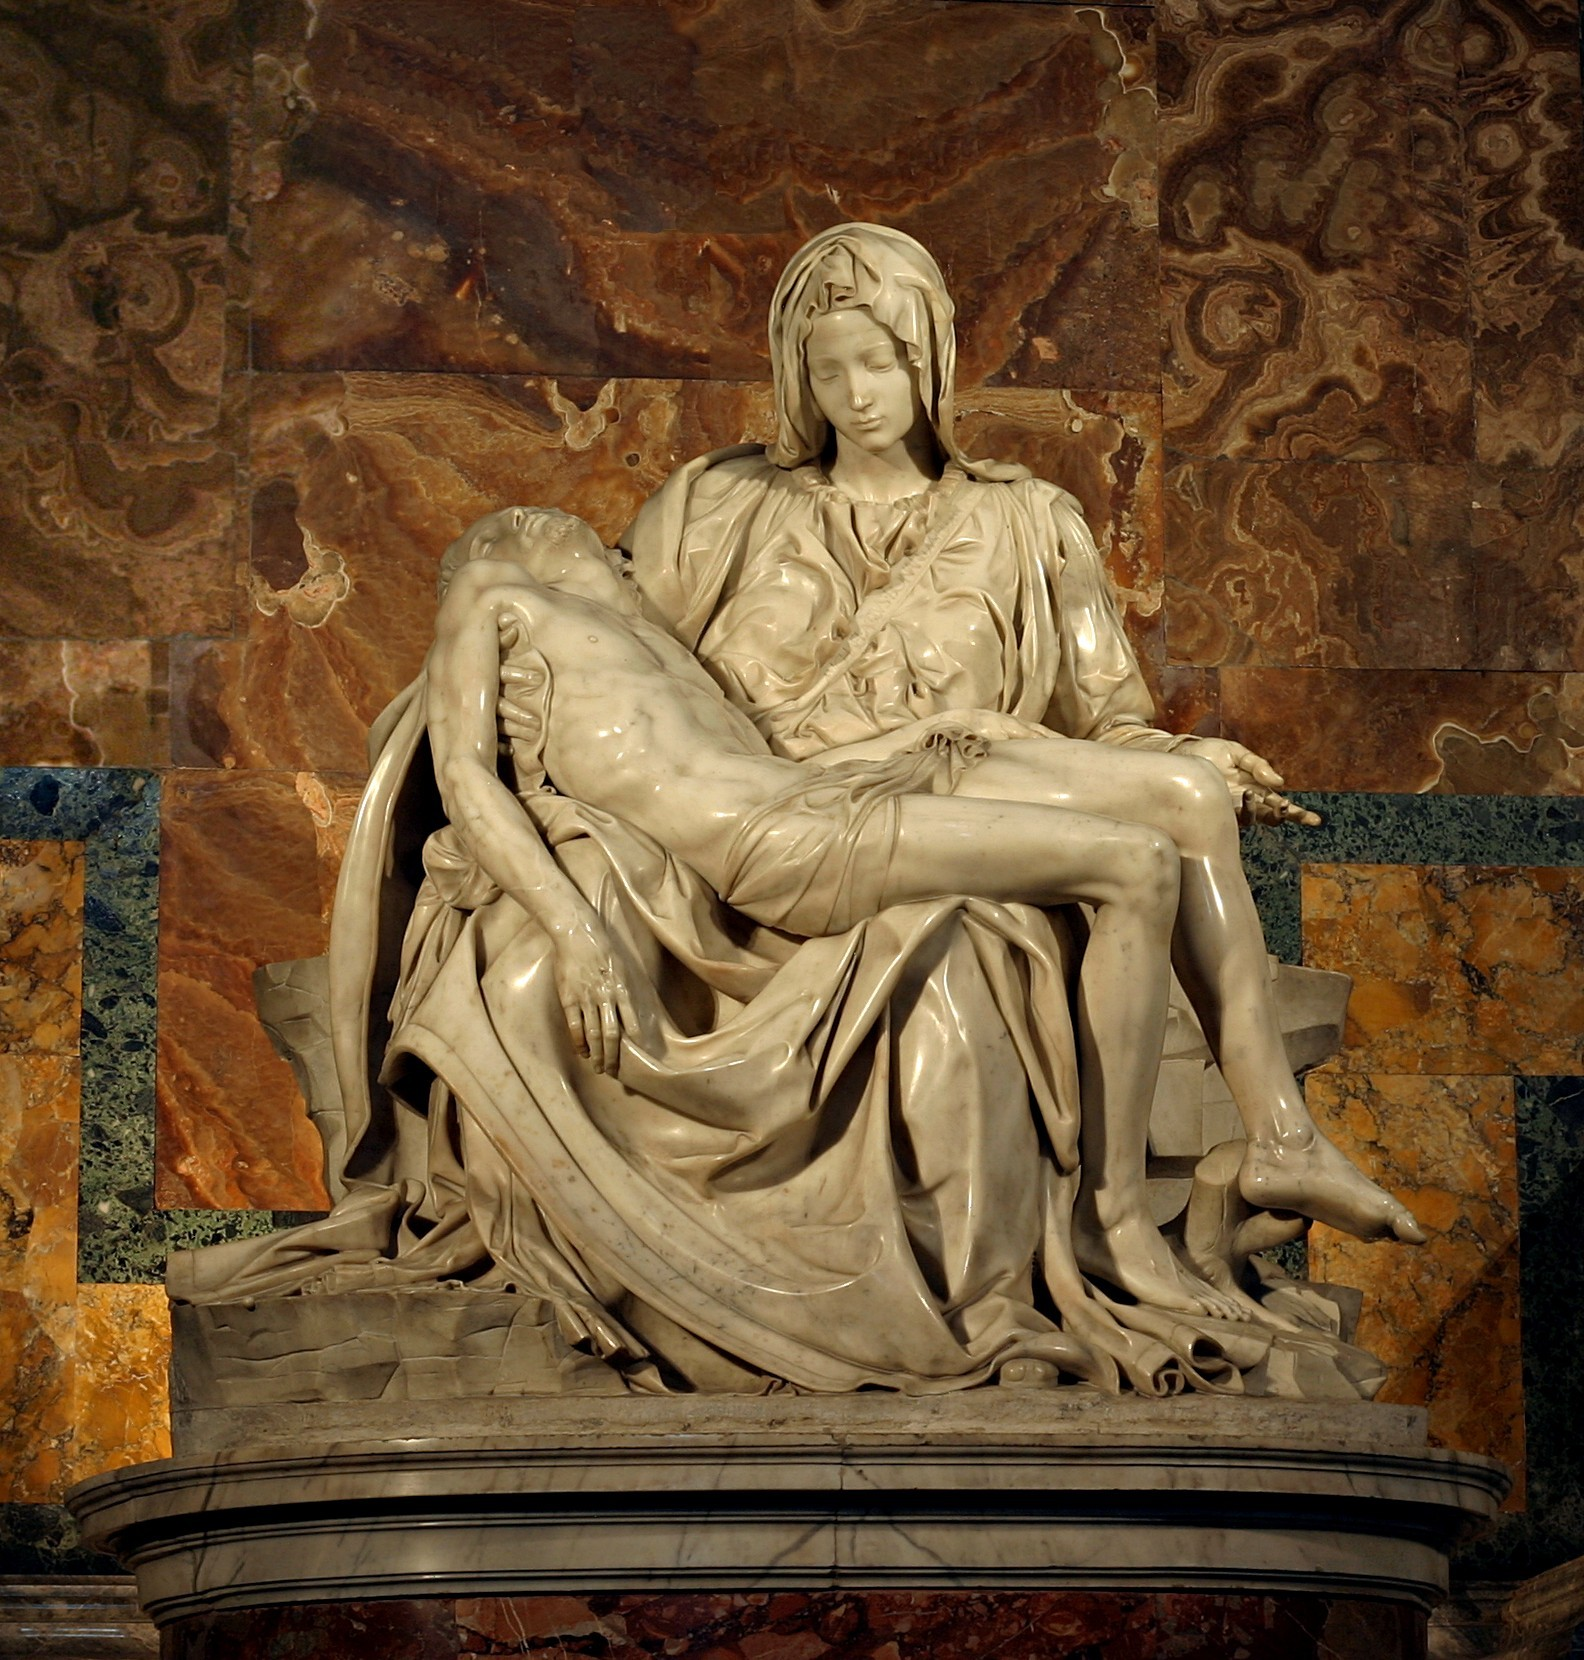 michelangelo pieta essay If you enjoyed this essay, please consider making a donation to further our research and writing debra brehmer portrait society gallery director one of michelangelo.